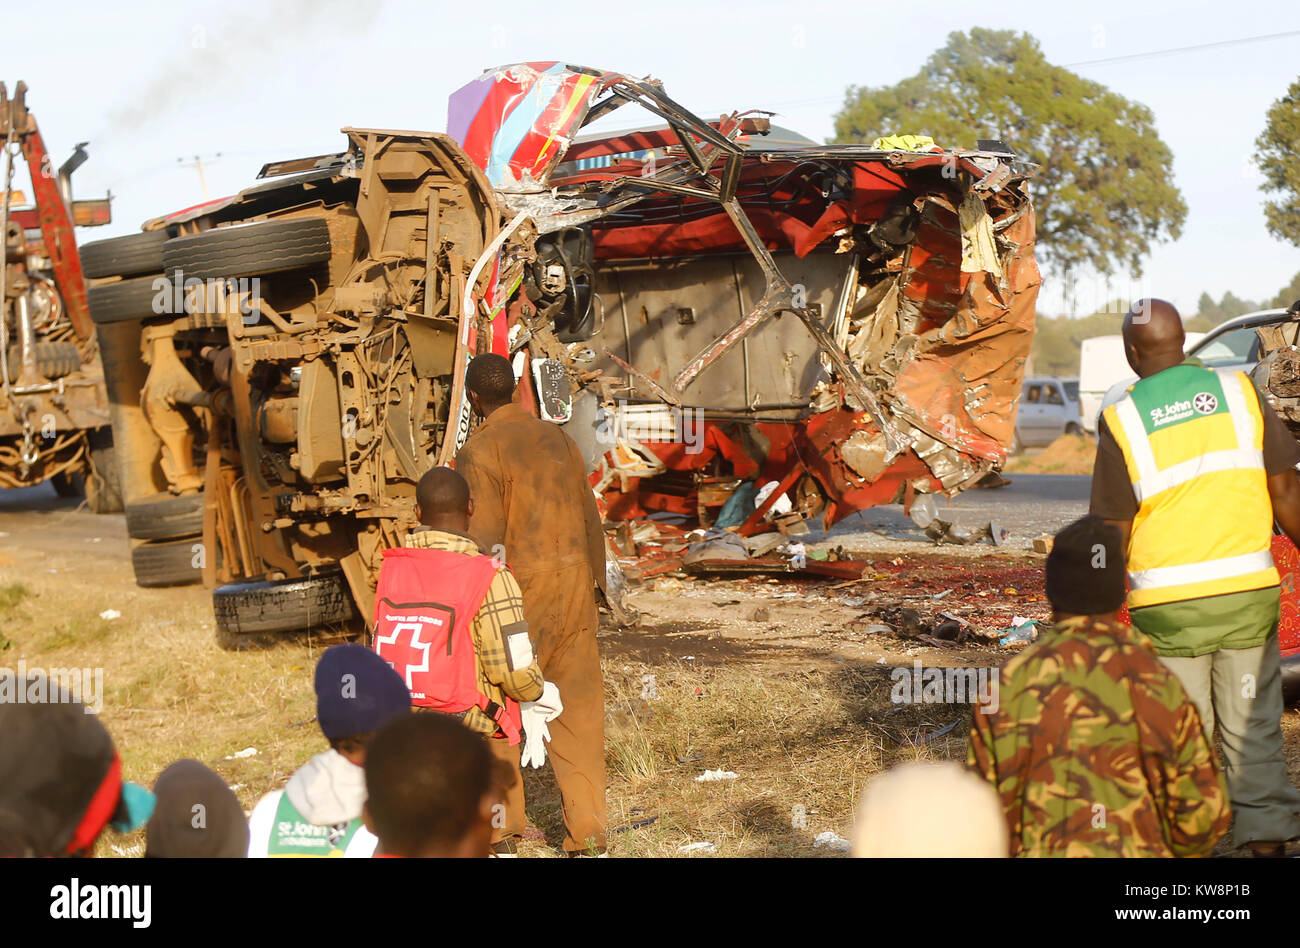 Nairobi. 31st Dec, 2017. People gather around the site where a road accident occurred on the Nakuru-Eldoret highway Stock Photo